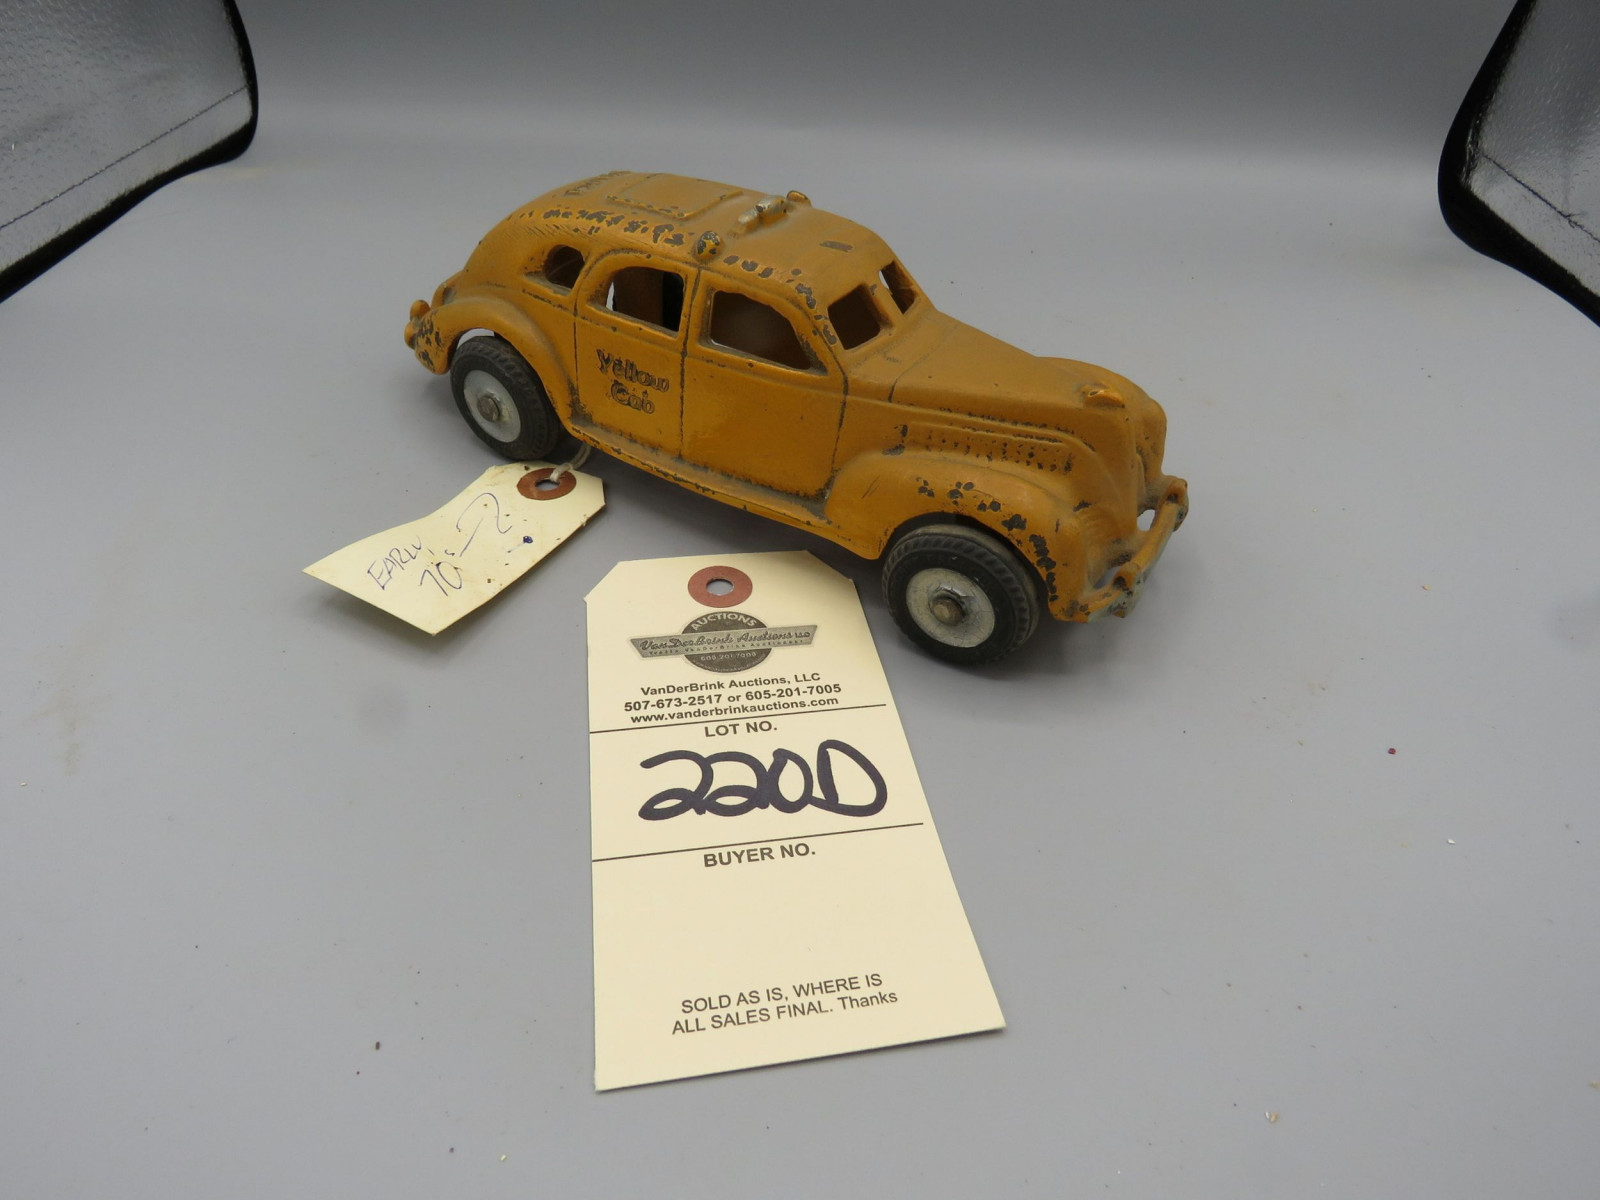 Vintage Cast Iron Early Taxi Cab - Image 1